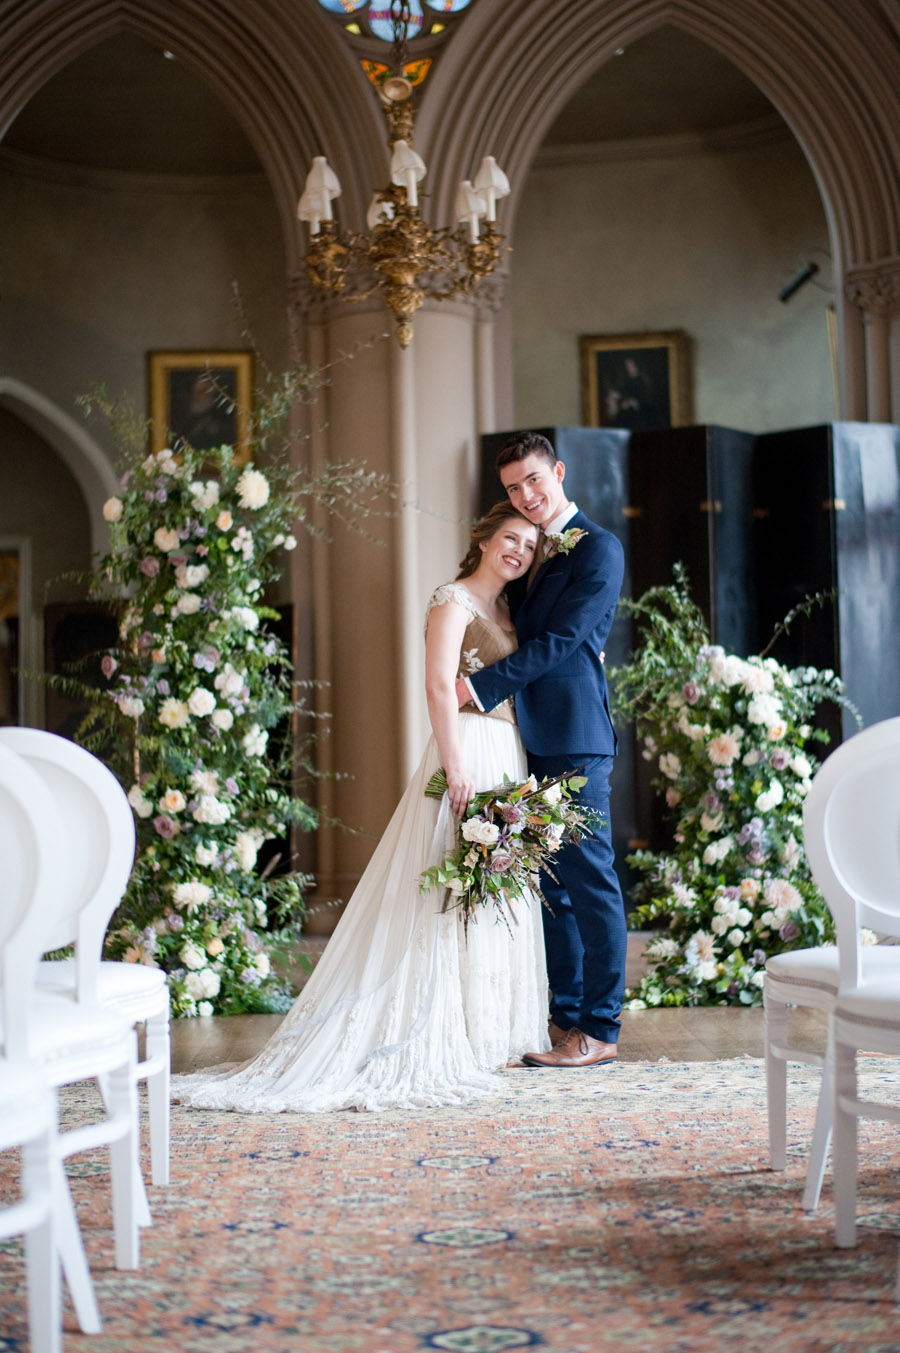 Luxe, modern wedding style ideas by Natalie Hewitt, image credit Rachael Connerton Photography (40)